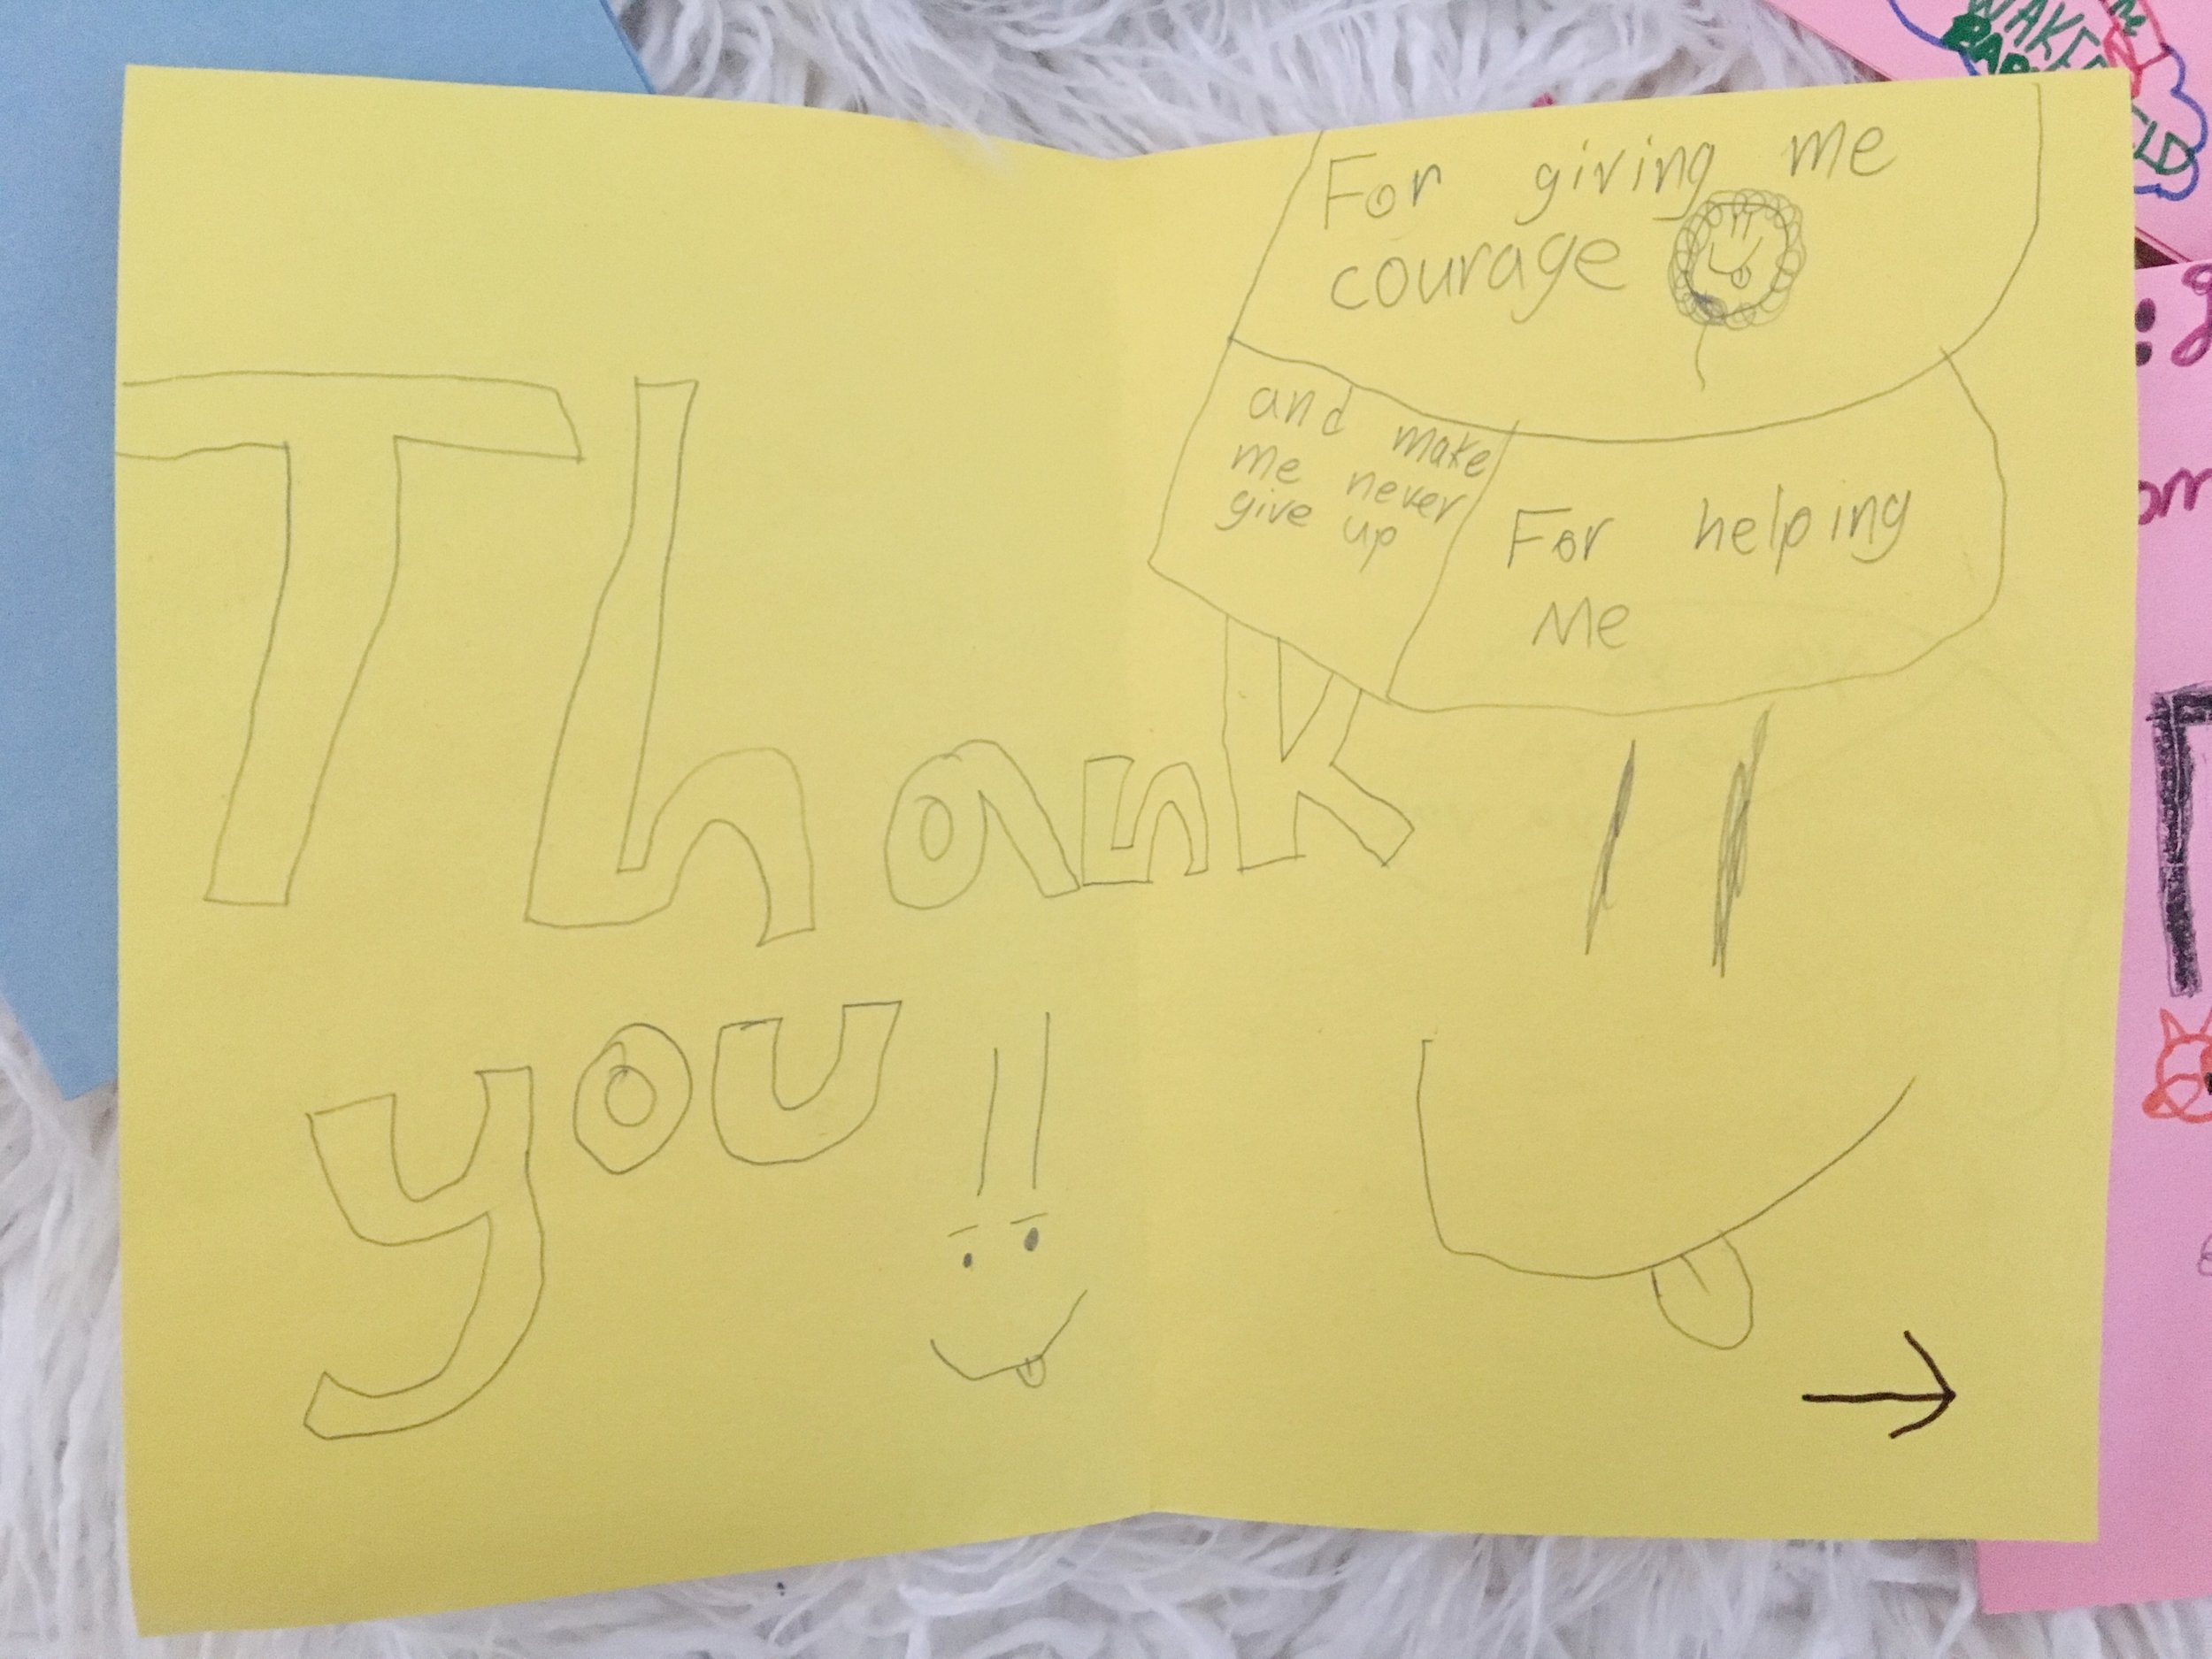 A special thank you note from one of the students from Ms. Her's class.